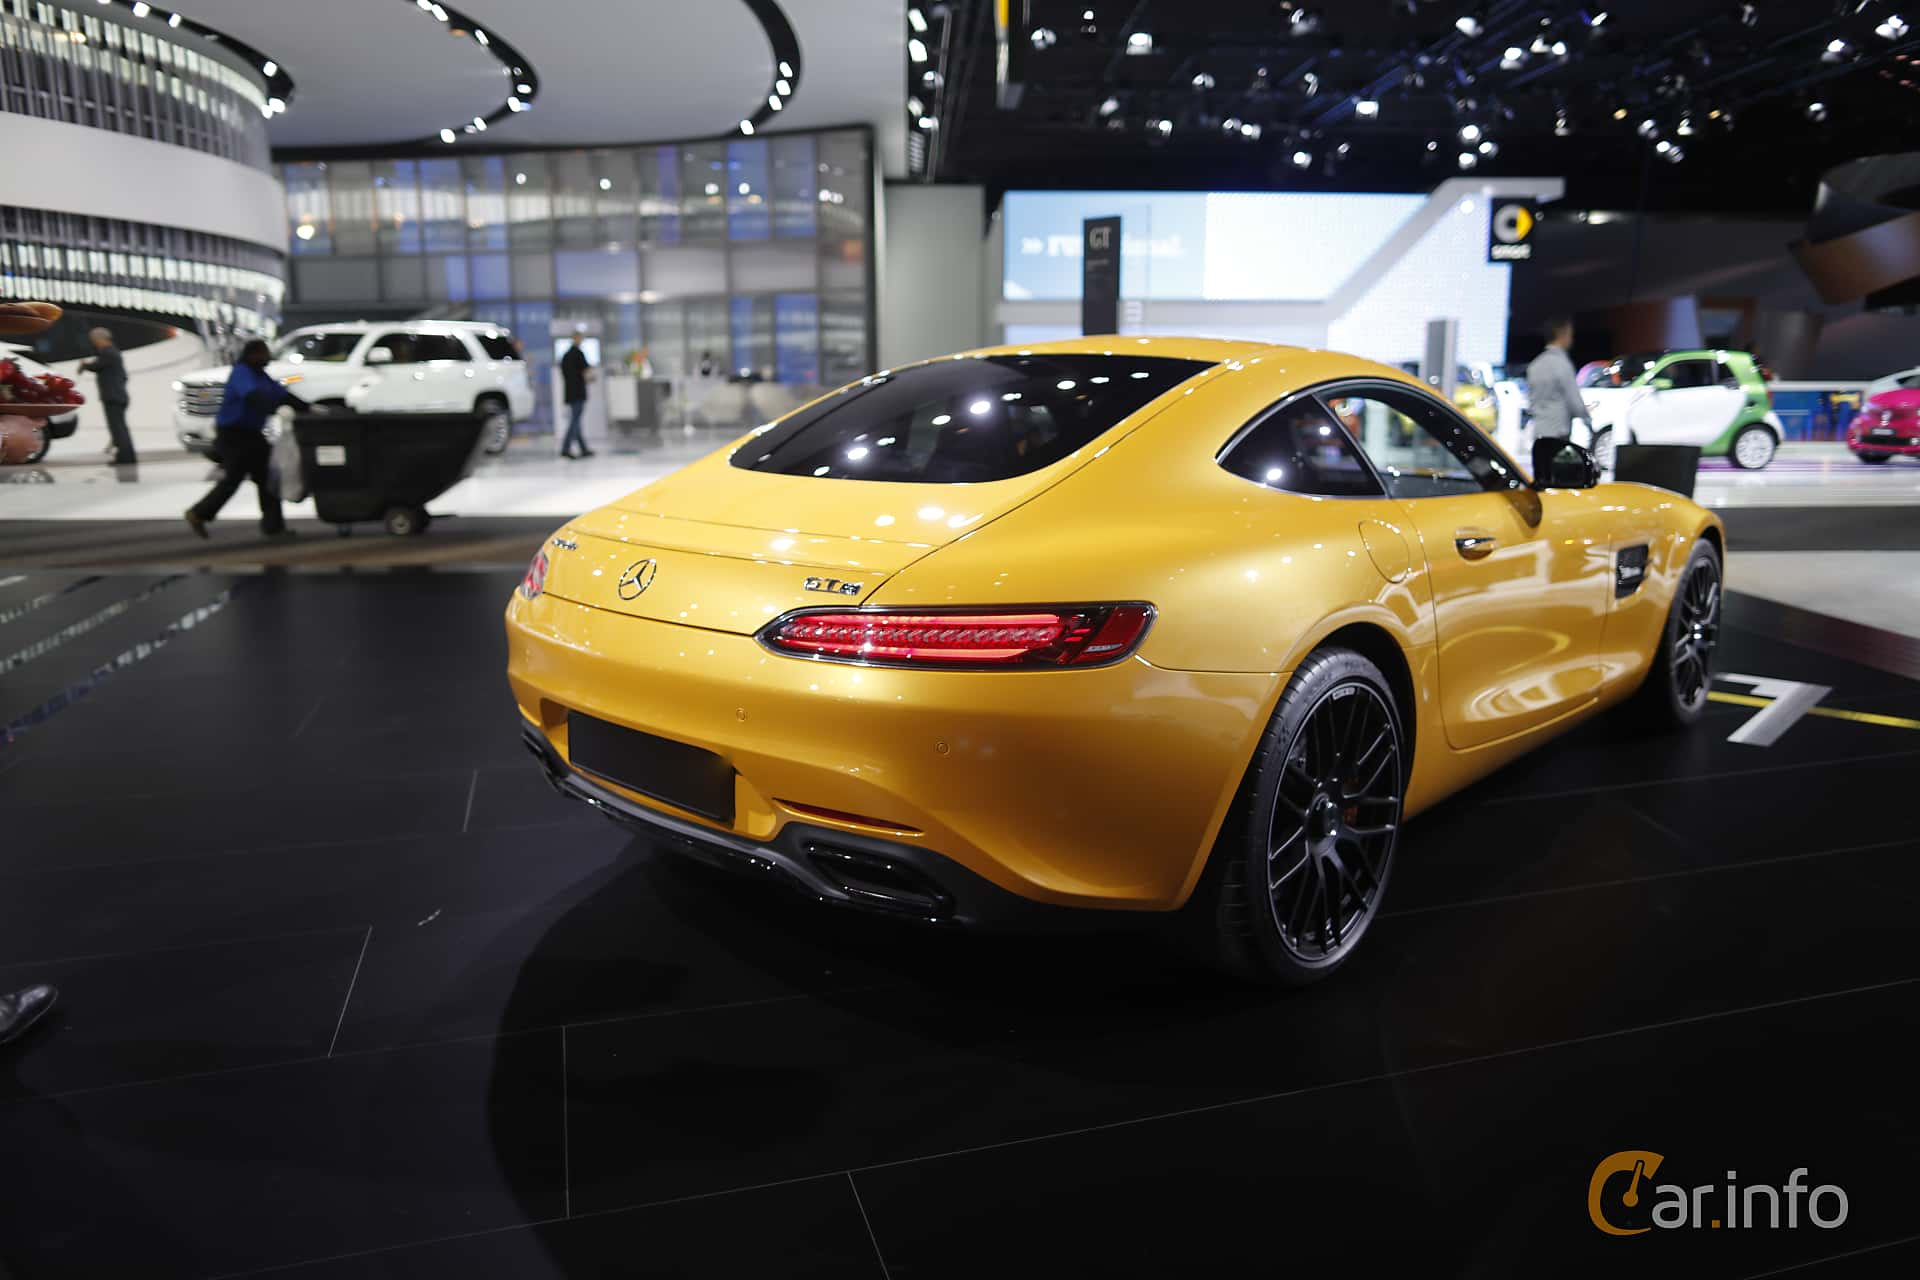 Bak/Sida av Mercedes-Benz AMG GT S 4.0 V8 AMG Speedshift DCT, 510ps, 375kW, 2017 på North American International Auto Show 2017